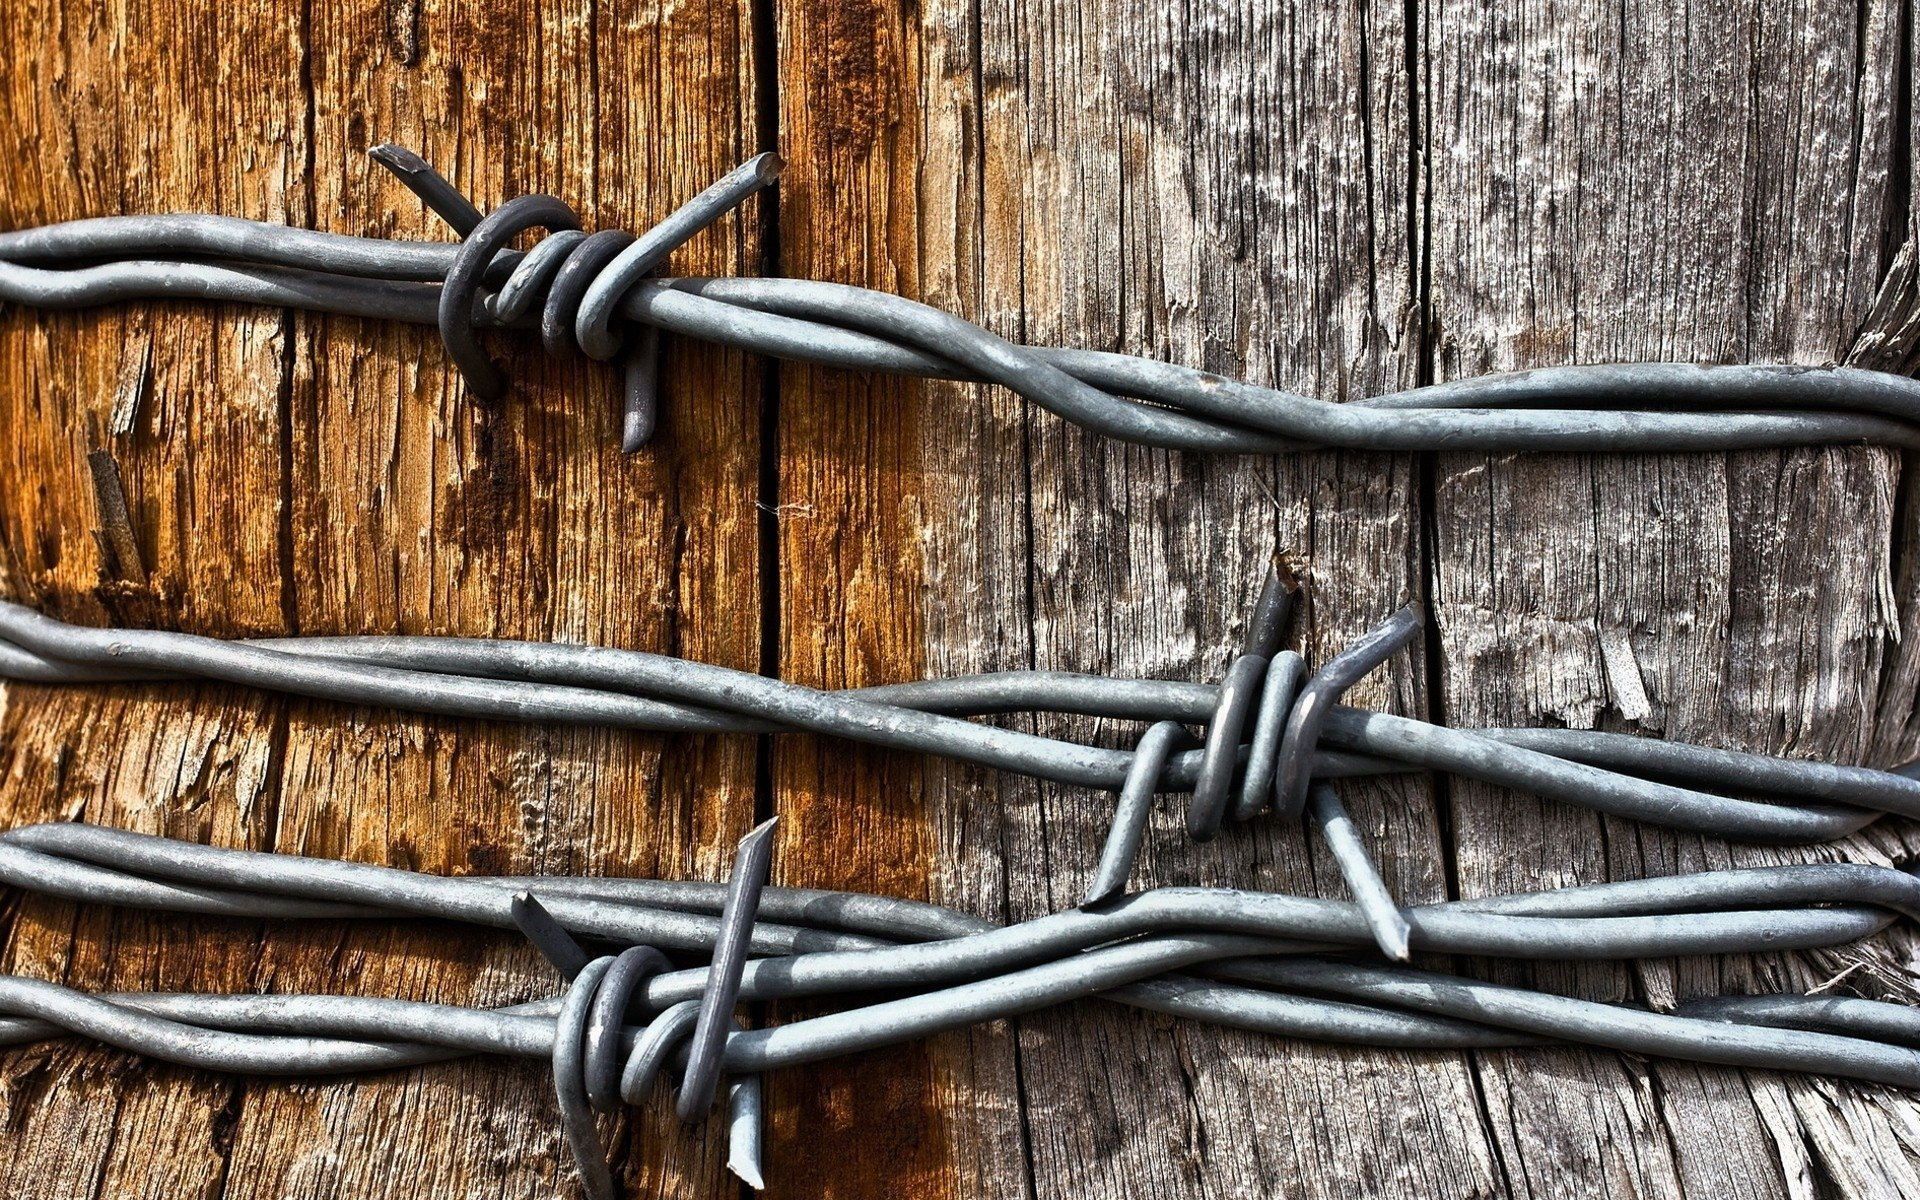 Barbed Wire Wallpaper barbed wire 4k ultra hd wallpaper and background | 4000x3000 | id